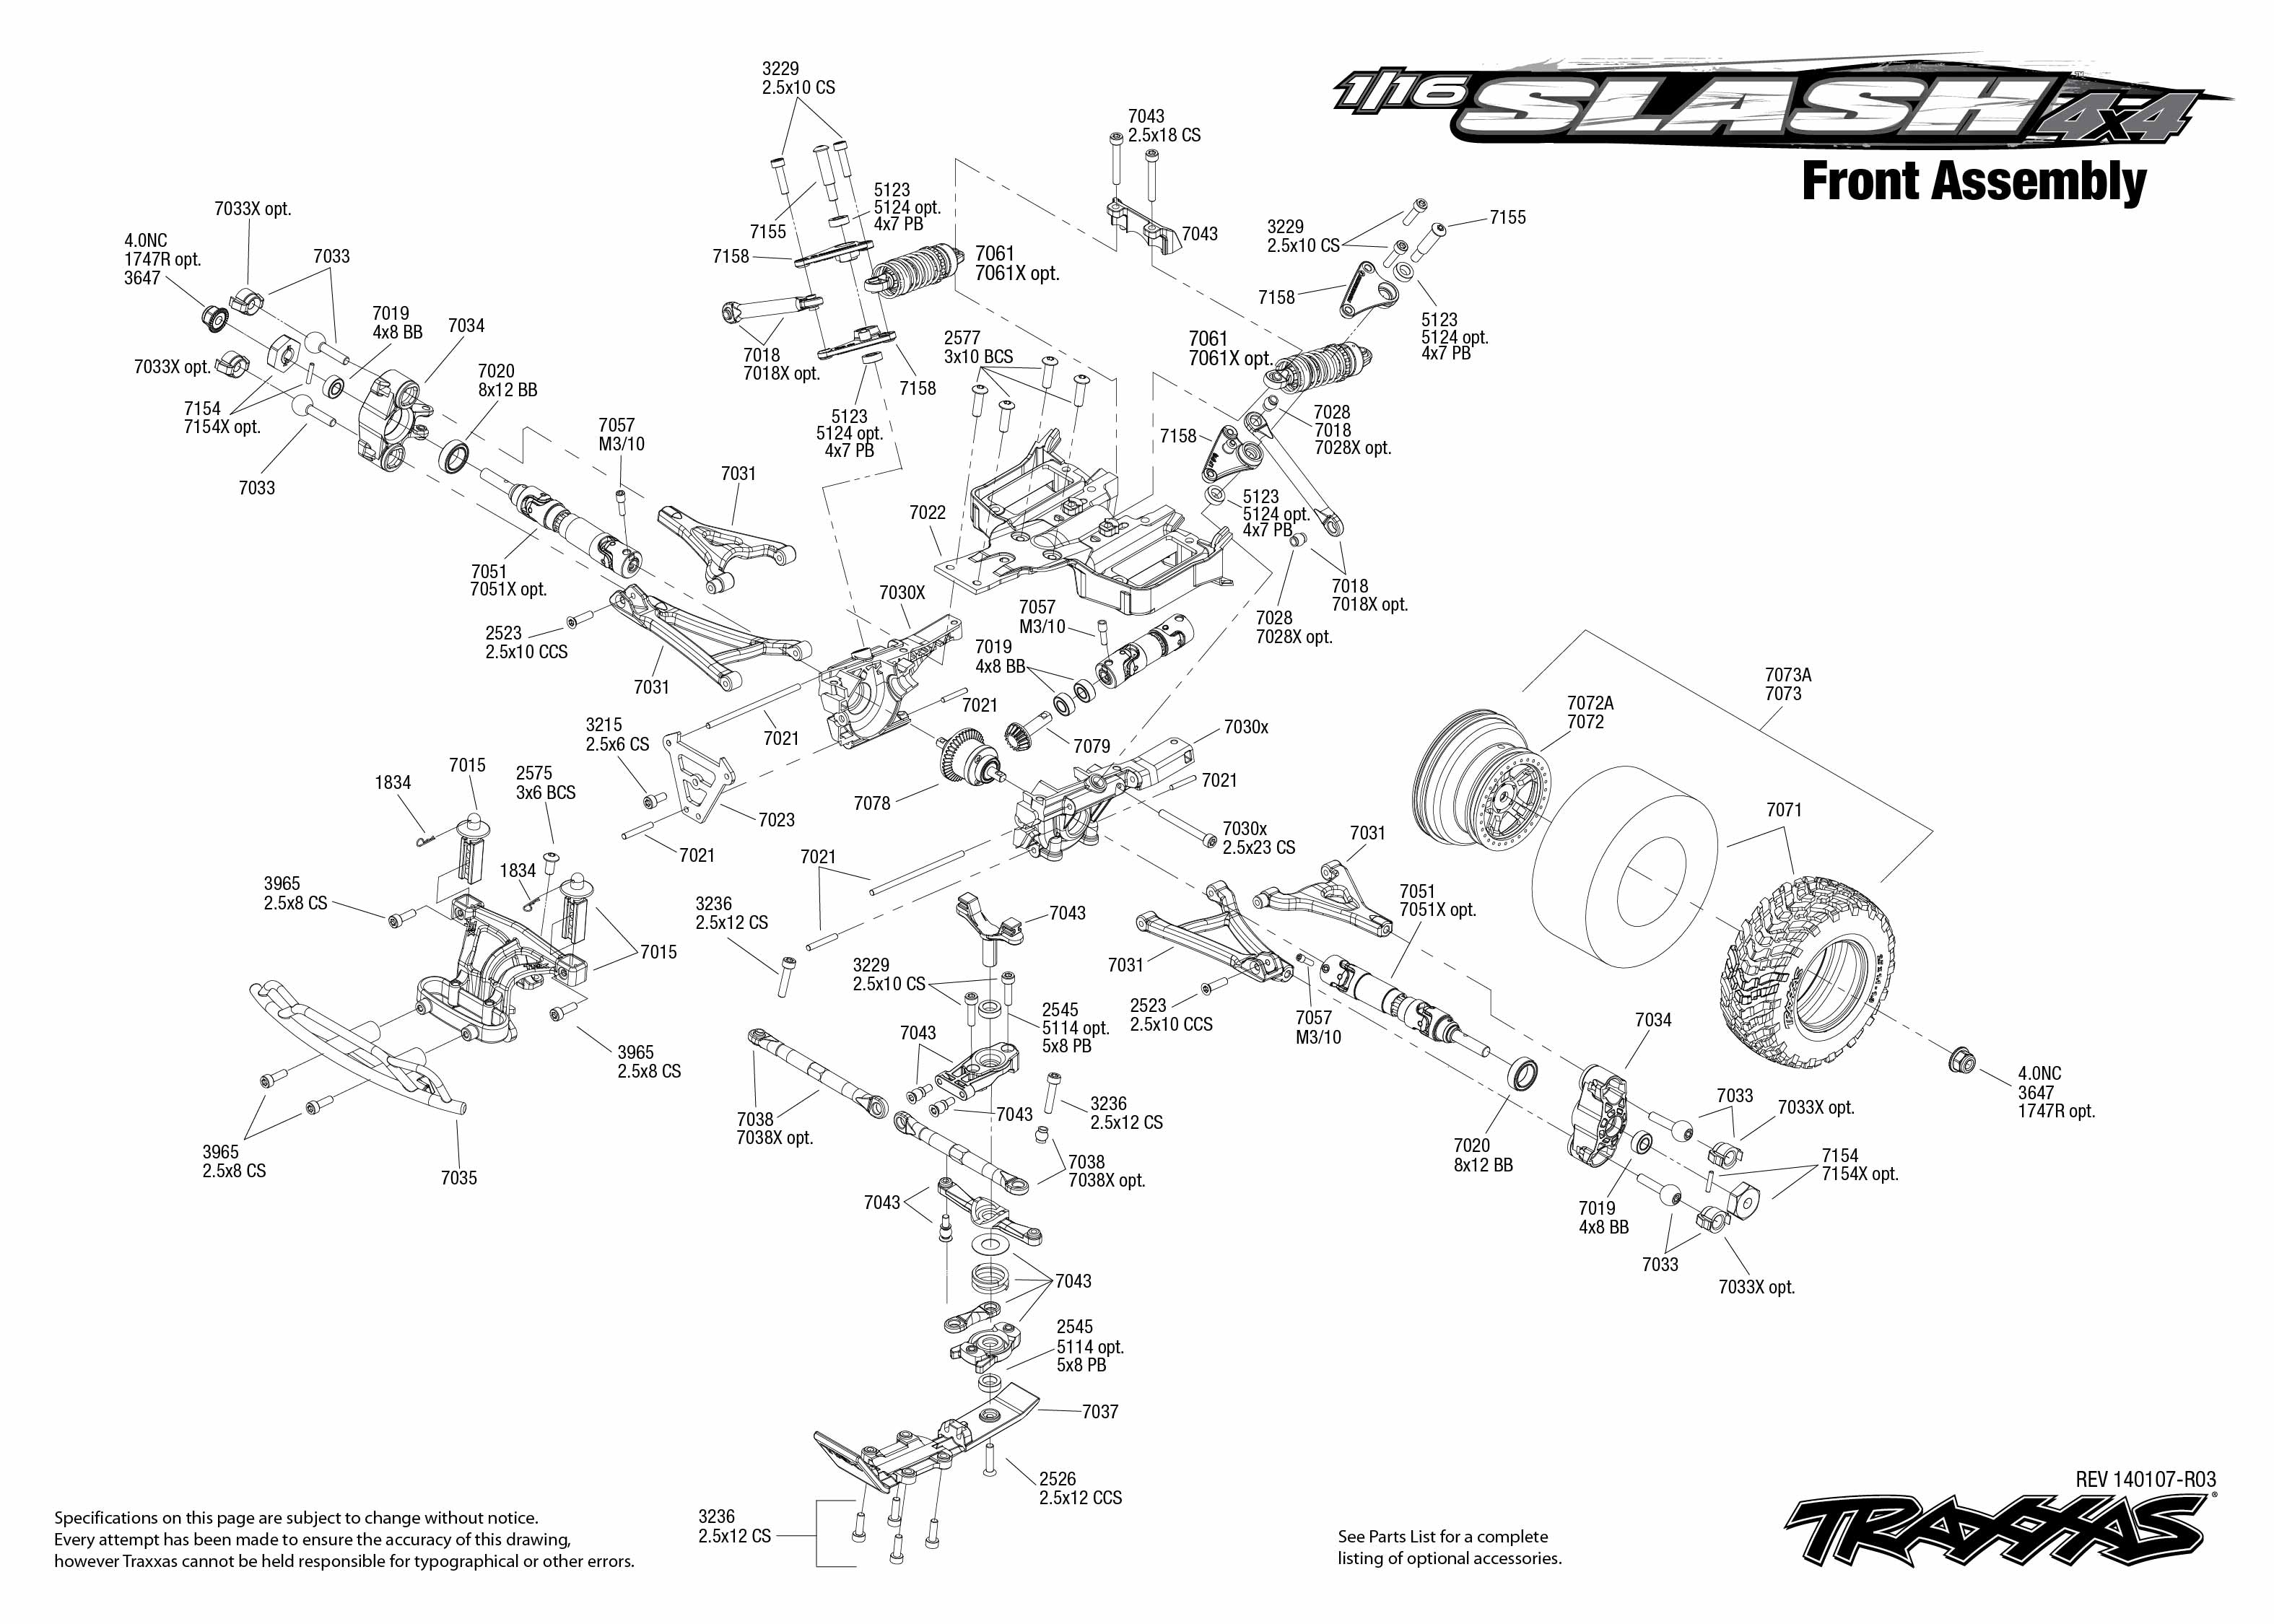 1/16 Slash 4X4 Brushed (#70054) - Front | Traxxas